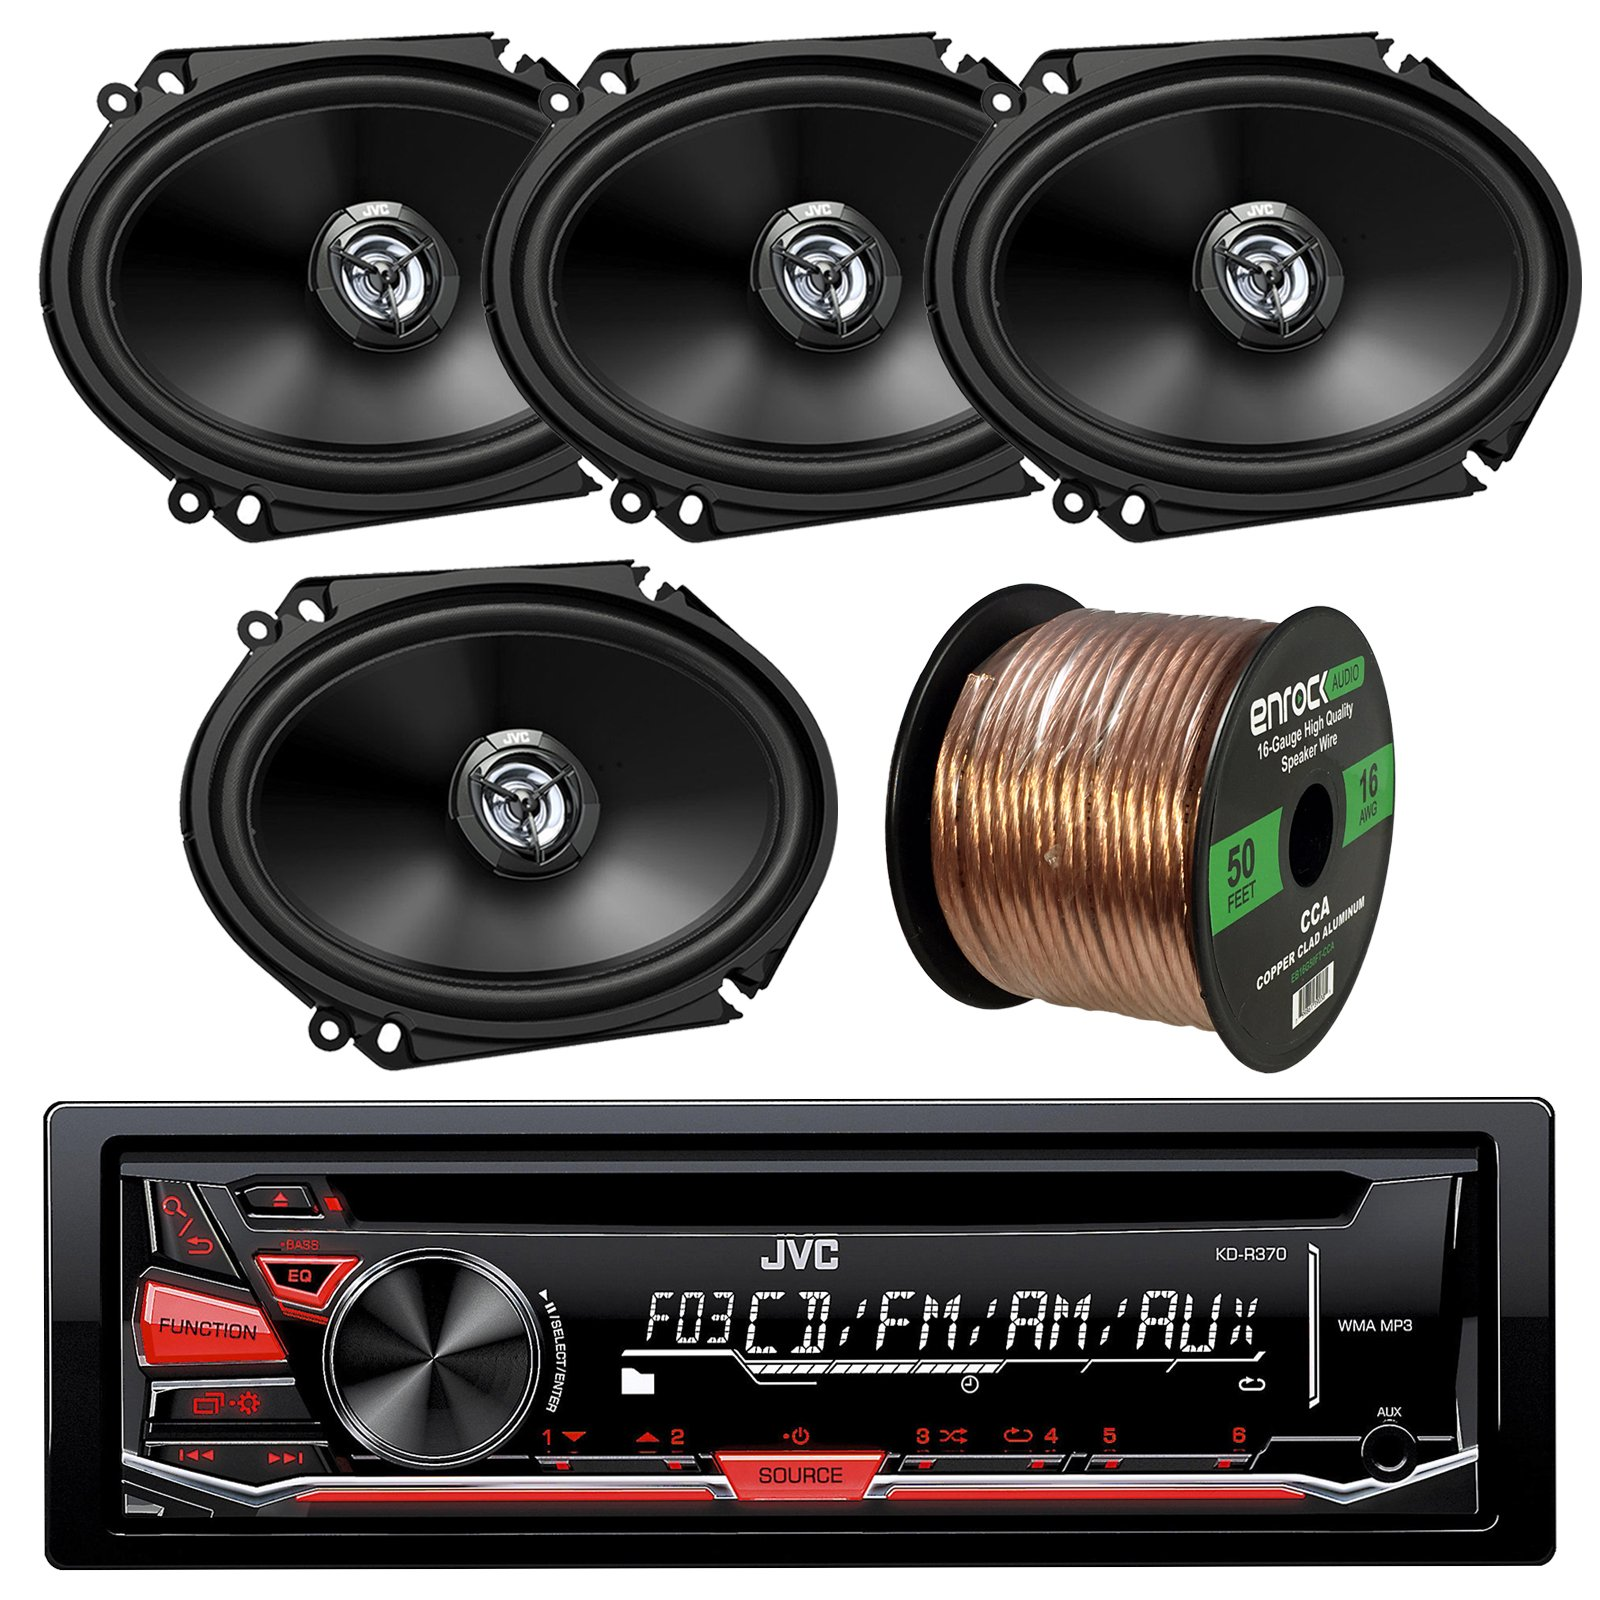 JVC KD-R370 CD/MP3 AM/FM Radio Player Car Receiver Bundle Combo With 4x (2 Pairs) CS-DR6820 300-Watt 6x8'' Inch Vehicle Coaxial Speakers + Enrock 50 Feet 16-Gauge Wire by JVCAudioBundle